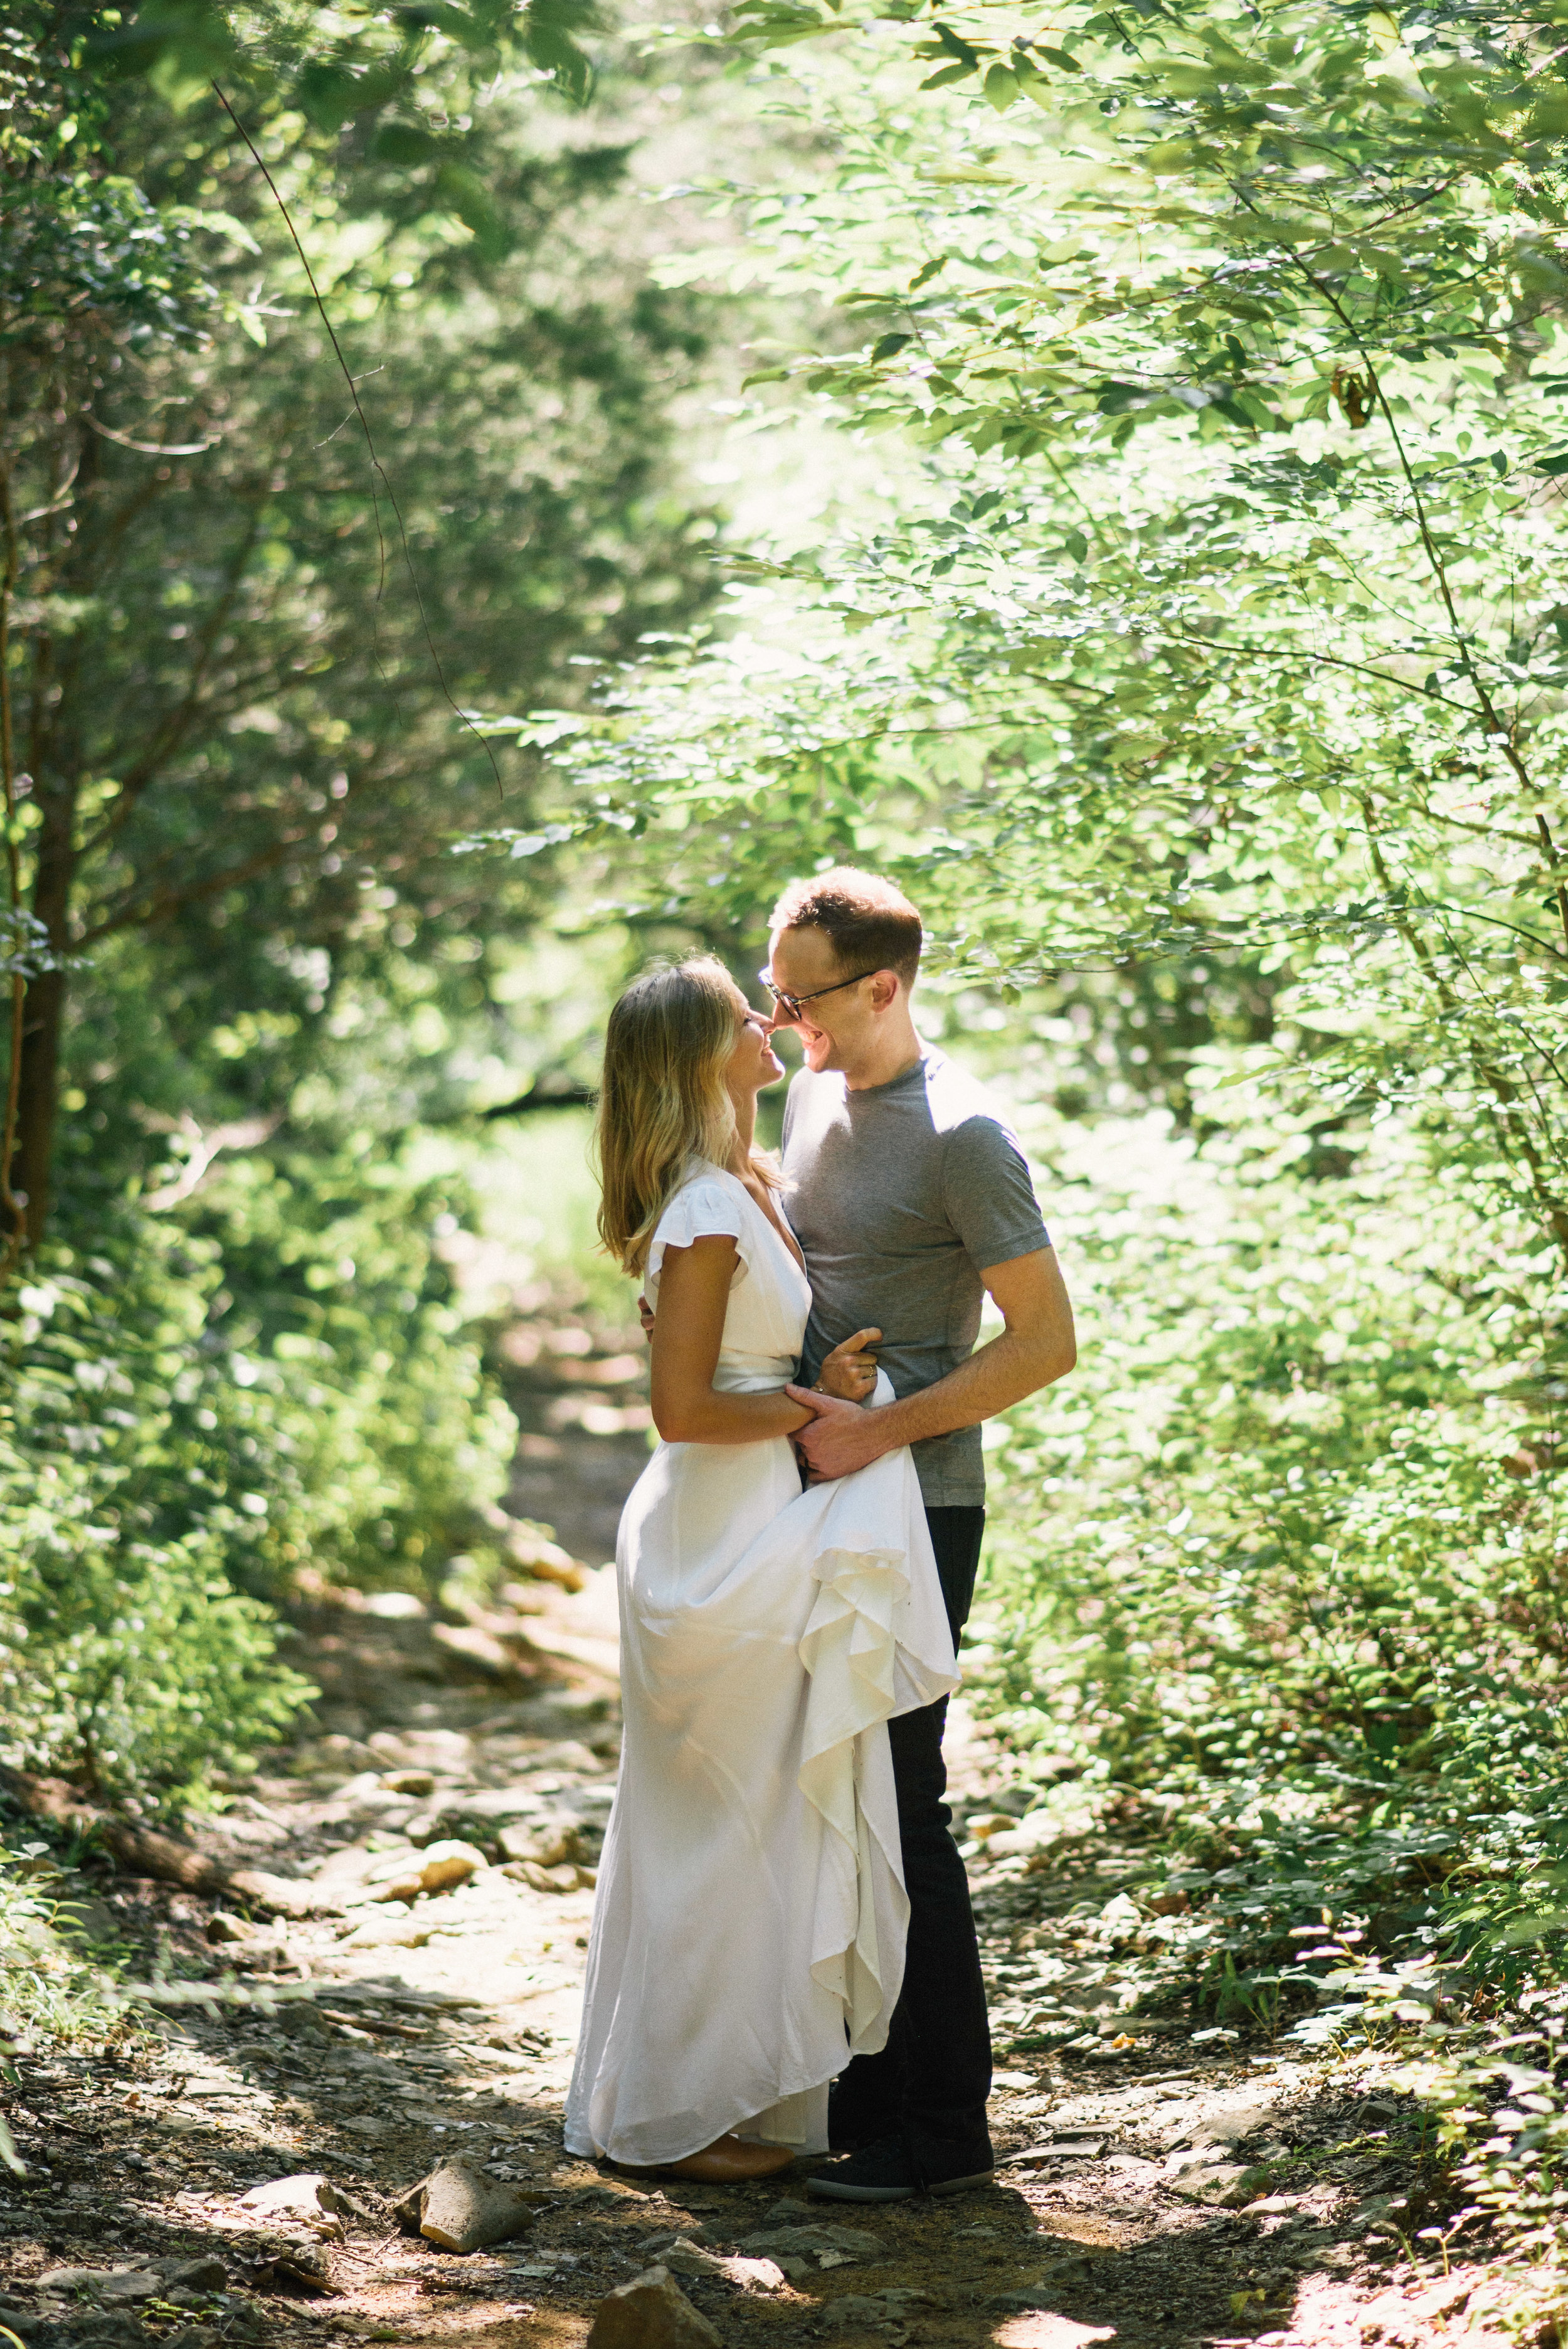 taryn-and-jackson-engagement-save-the-date (146 of 219).jpg